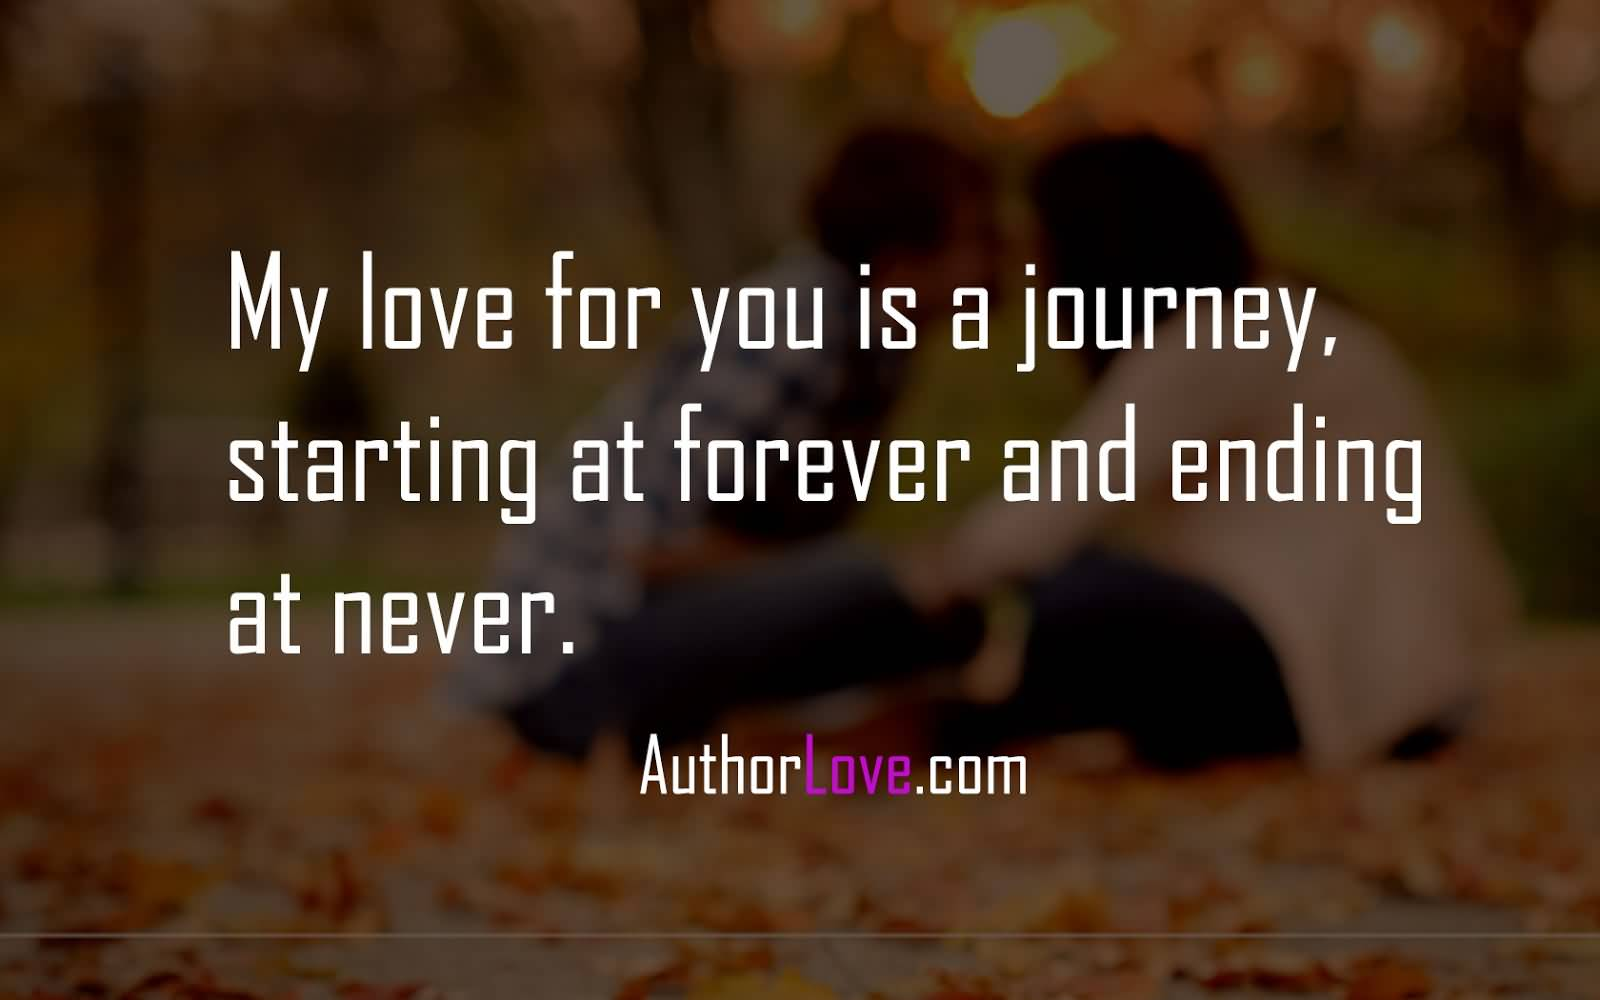 Unconditional Love Quotes For Him 20 Forever Love Quotes For Him With Cute Pictures  Quotesbae